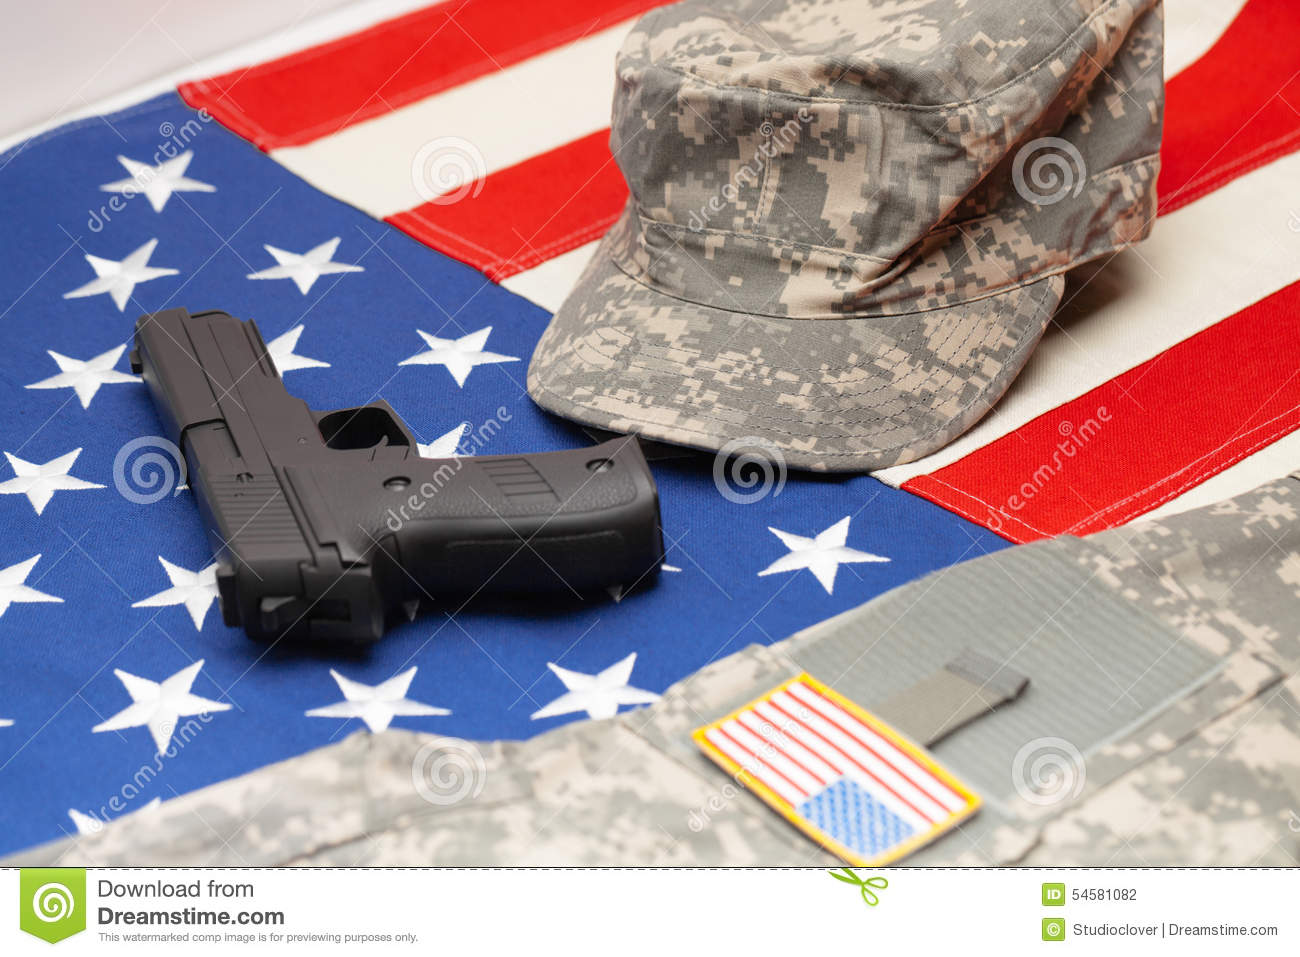 USA Flag With Handgun And US Army Uniform Over It Stock Photo ... d427ea20f06